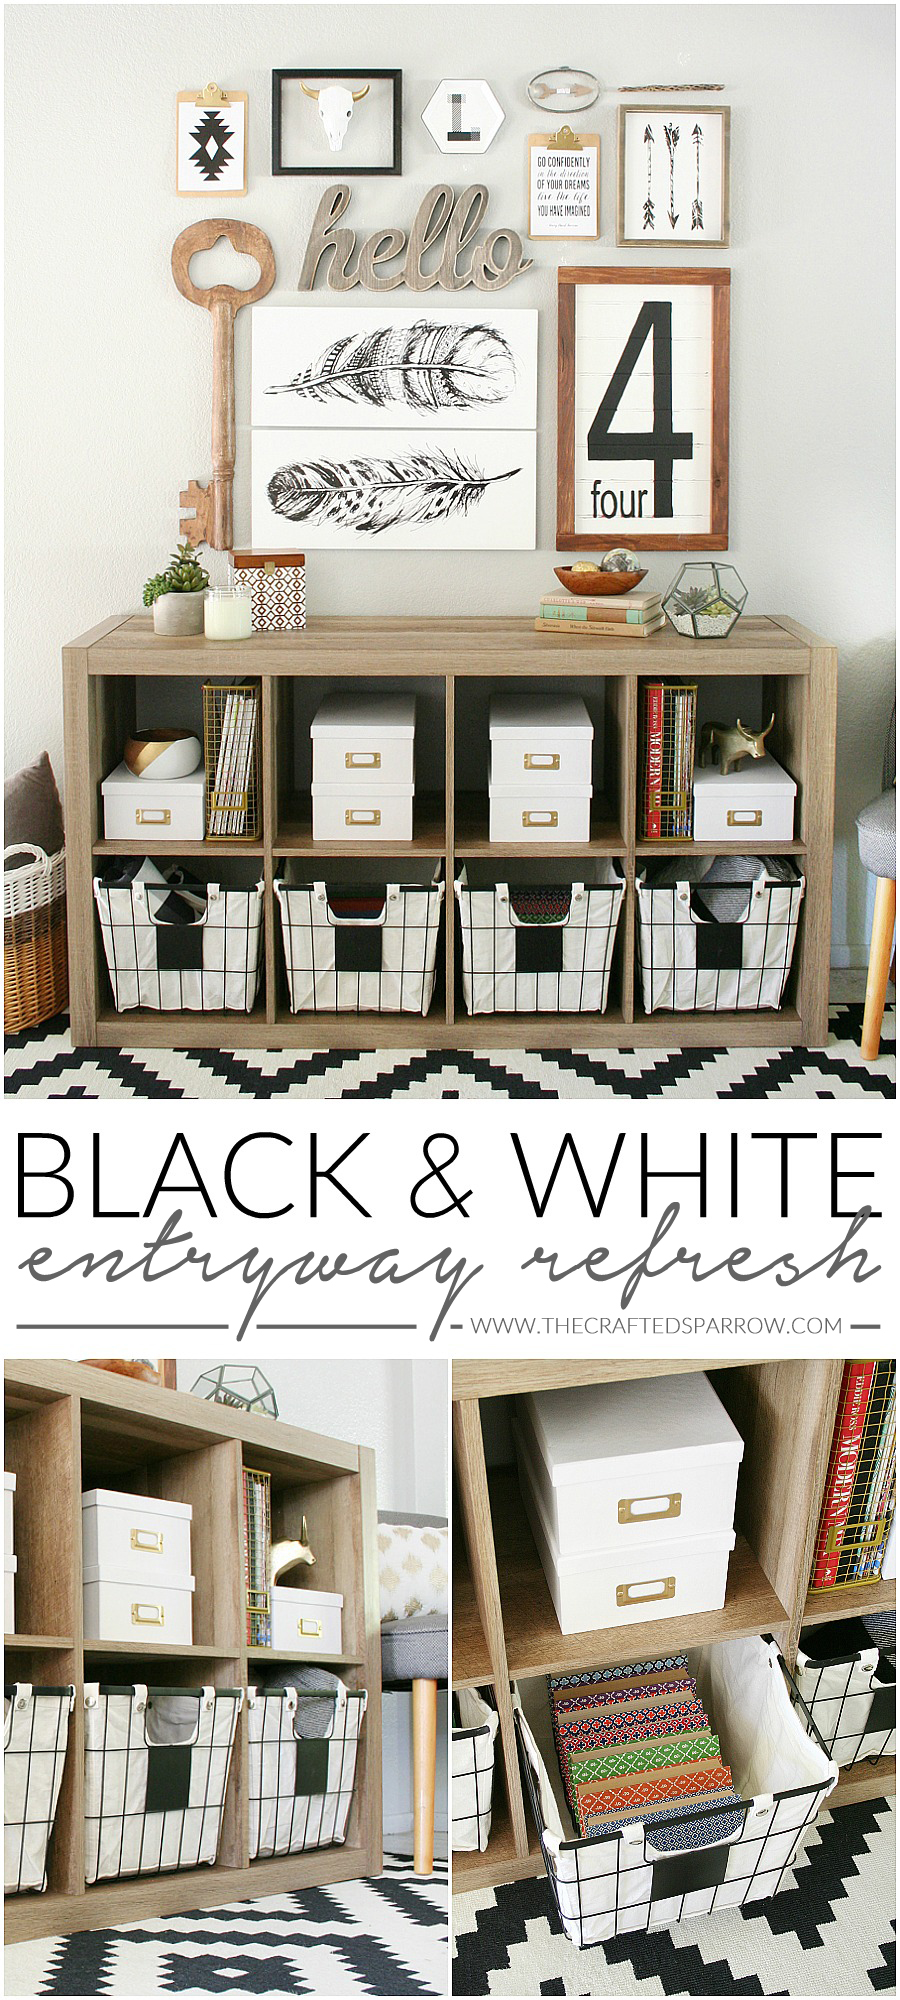 Black & White Entryway Refresh